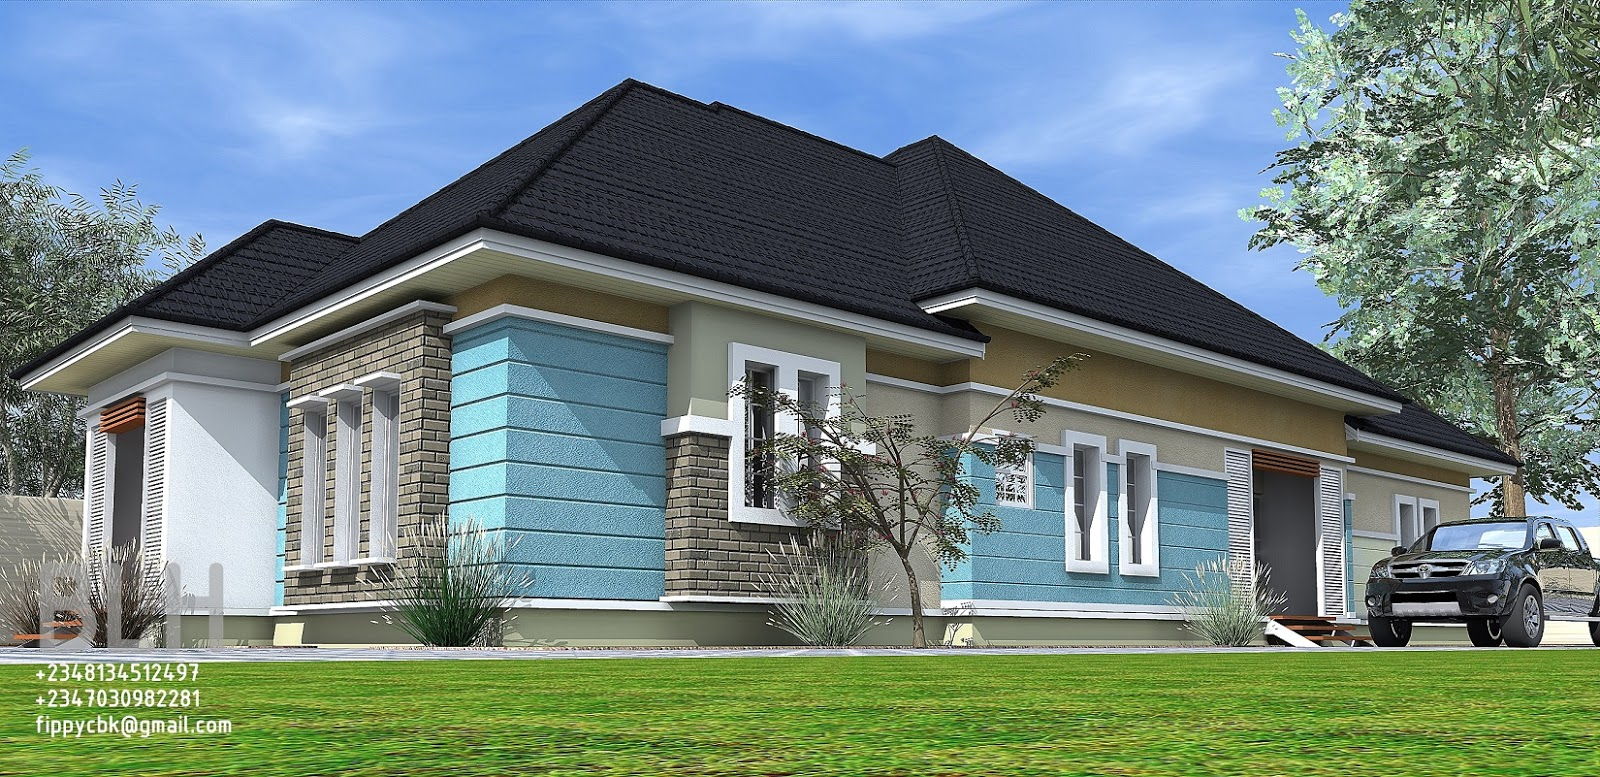 architectural designs by blacklakehouse 4 bedroom bungalow On 4 bedroom bungalow architectural design